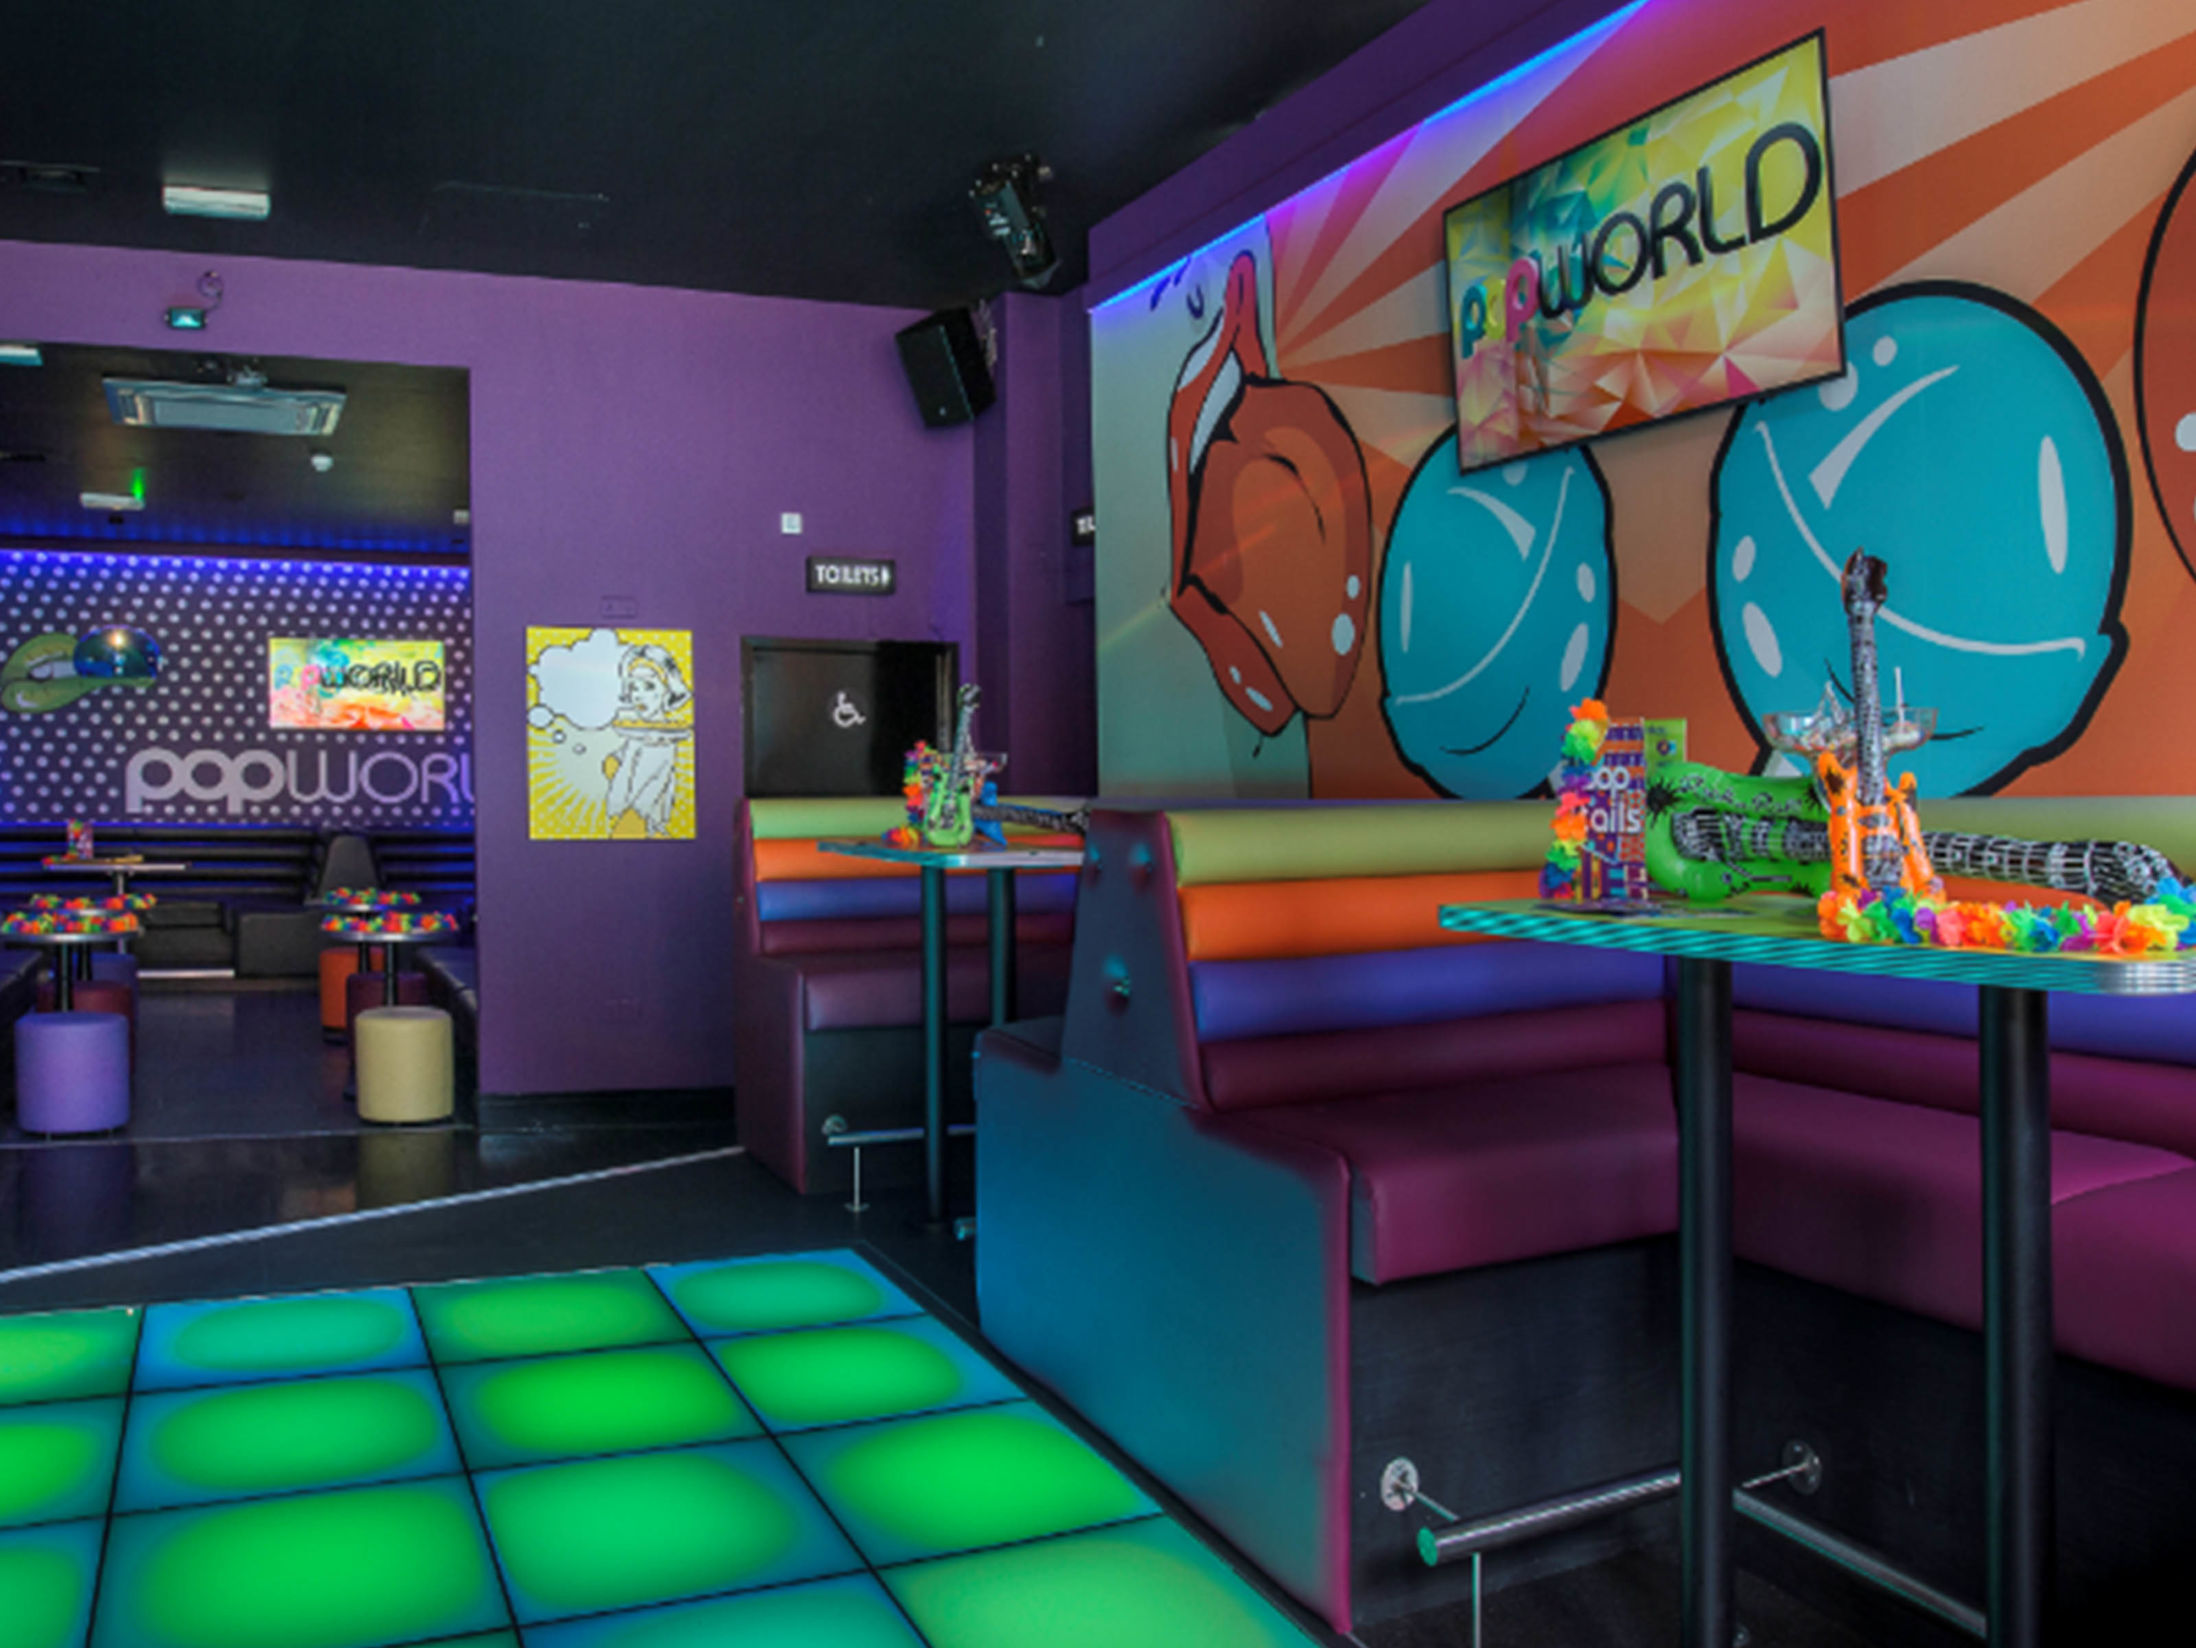 Best Clubs in Leeds - Popworld